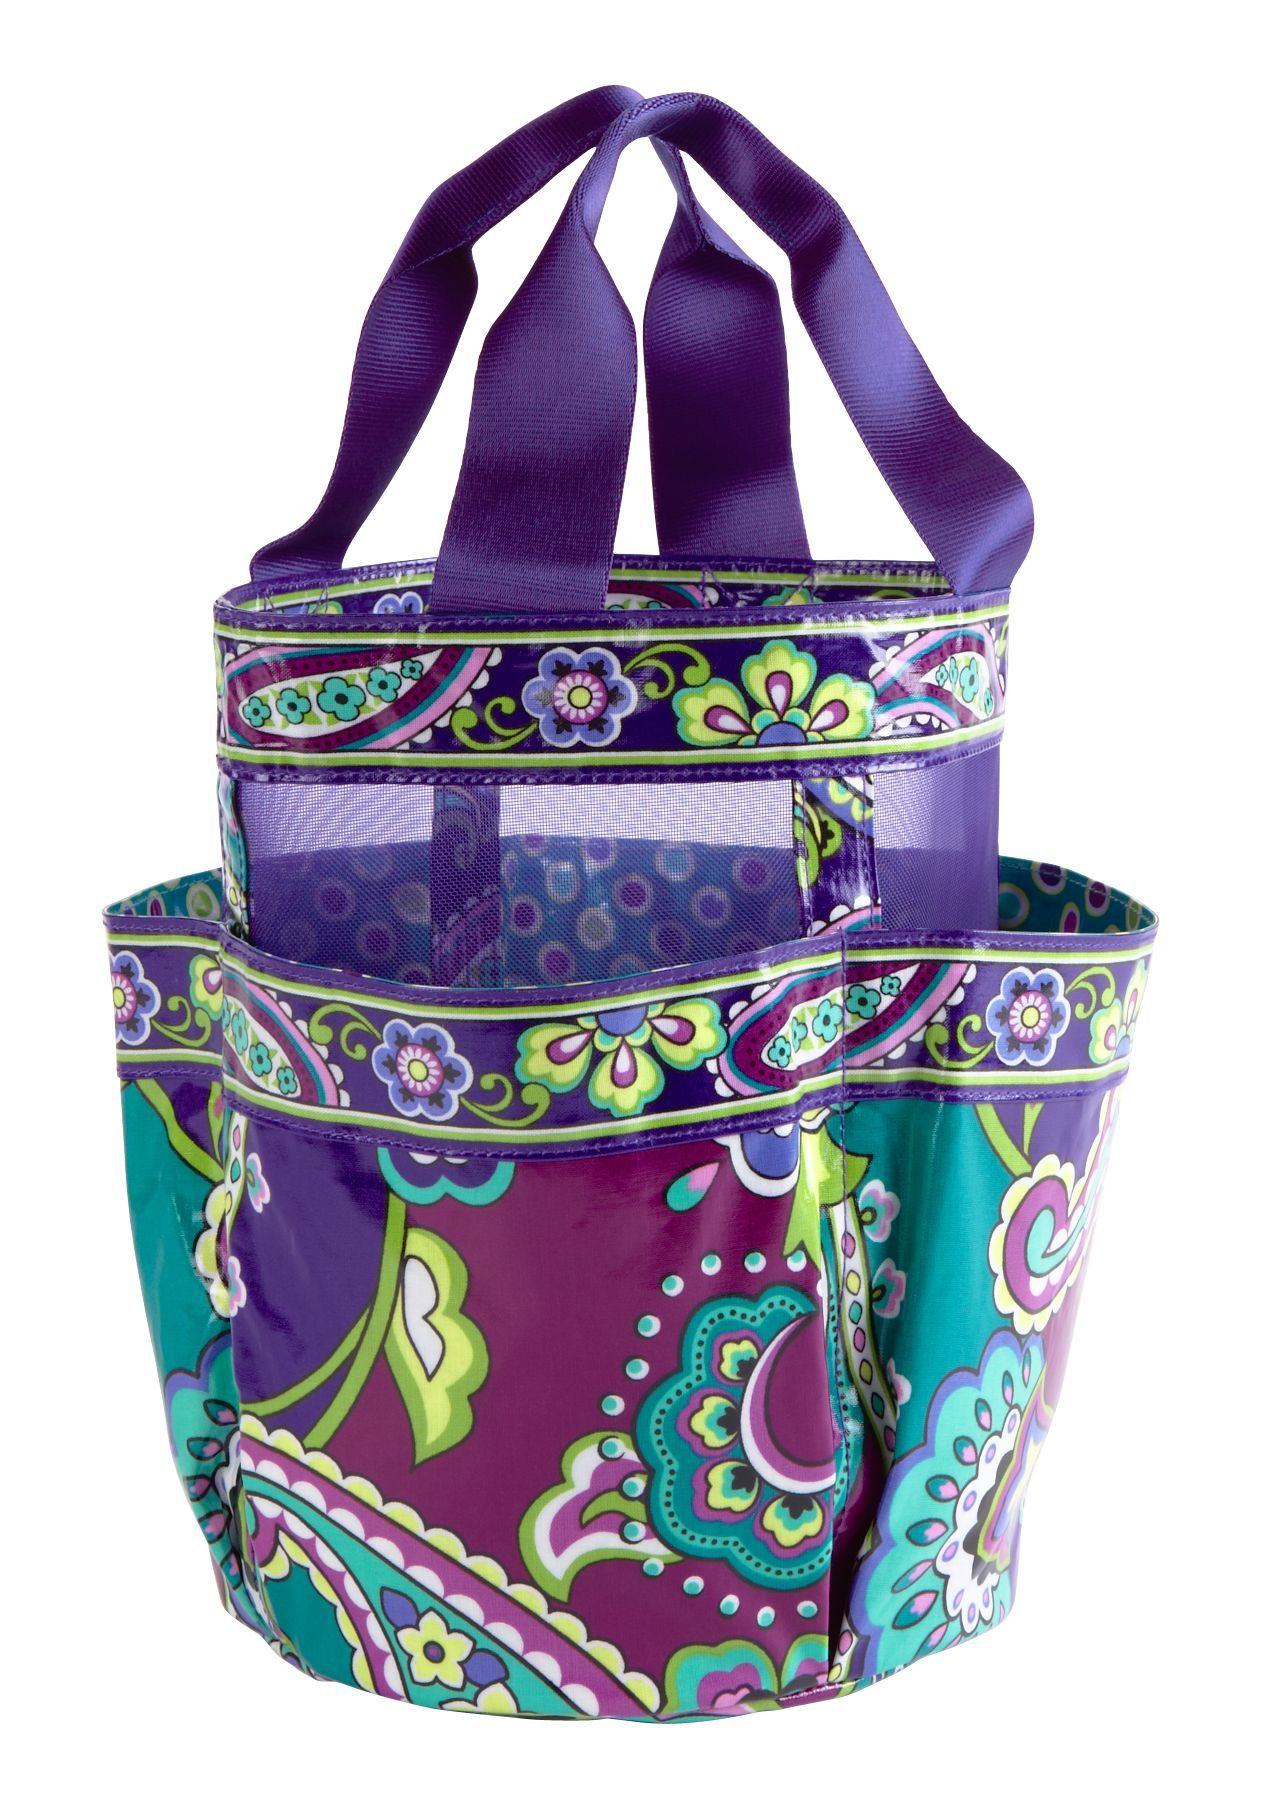 Vera Bradley Shower Caddy in Heather, $35. Good place to hold your ...